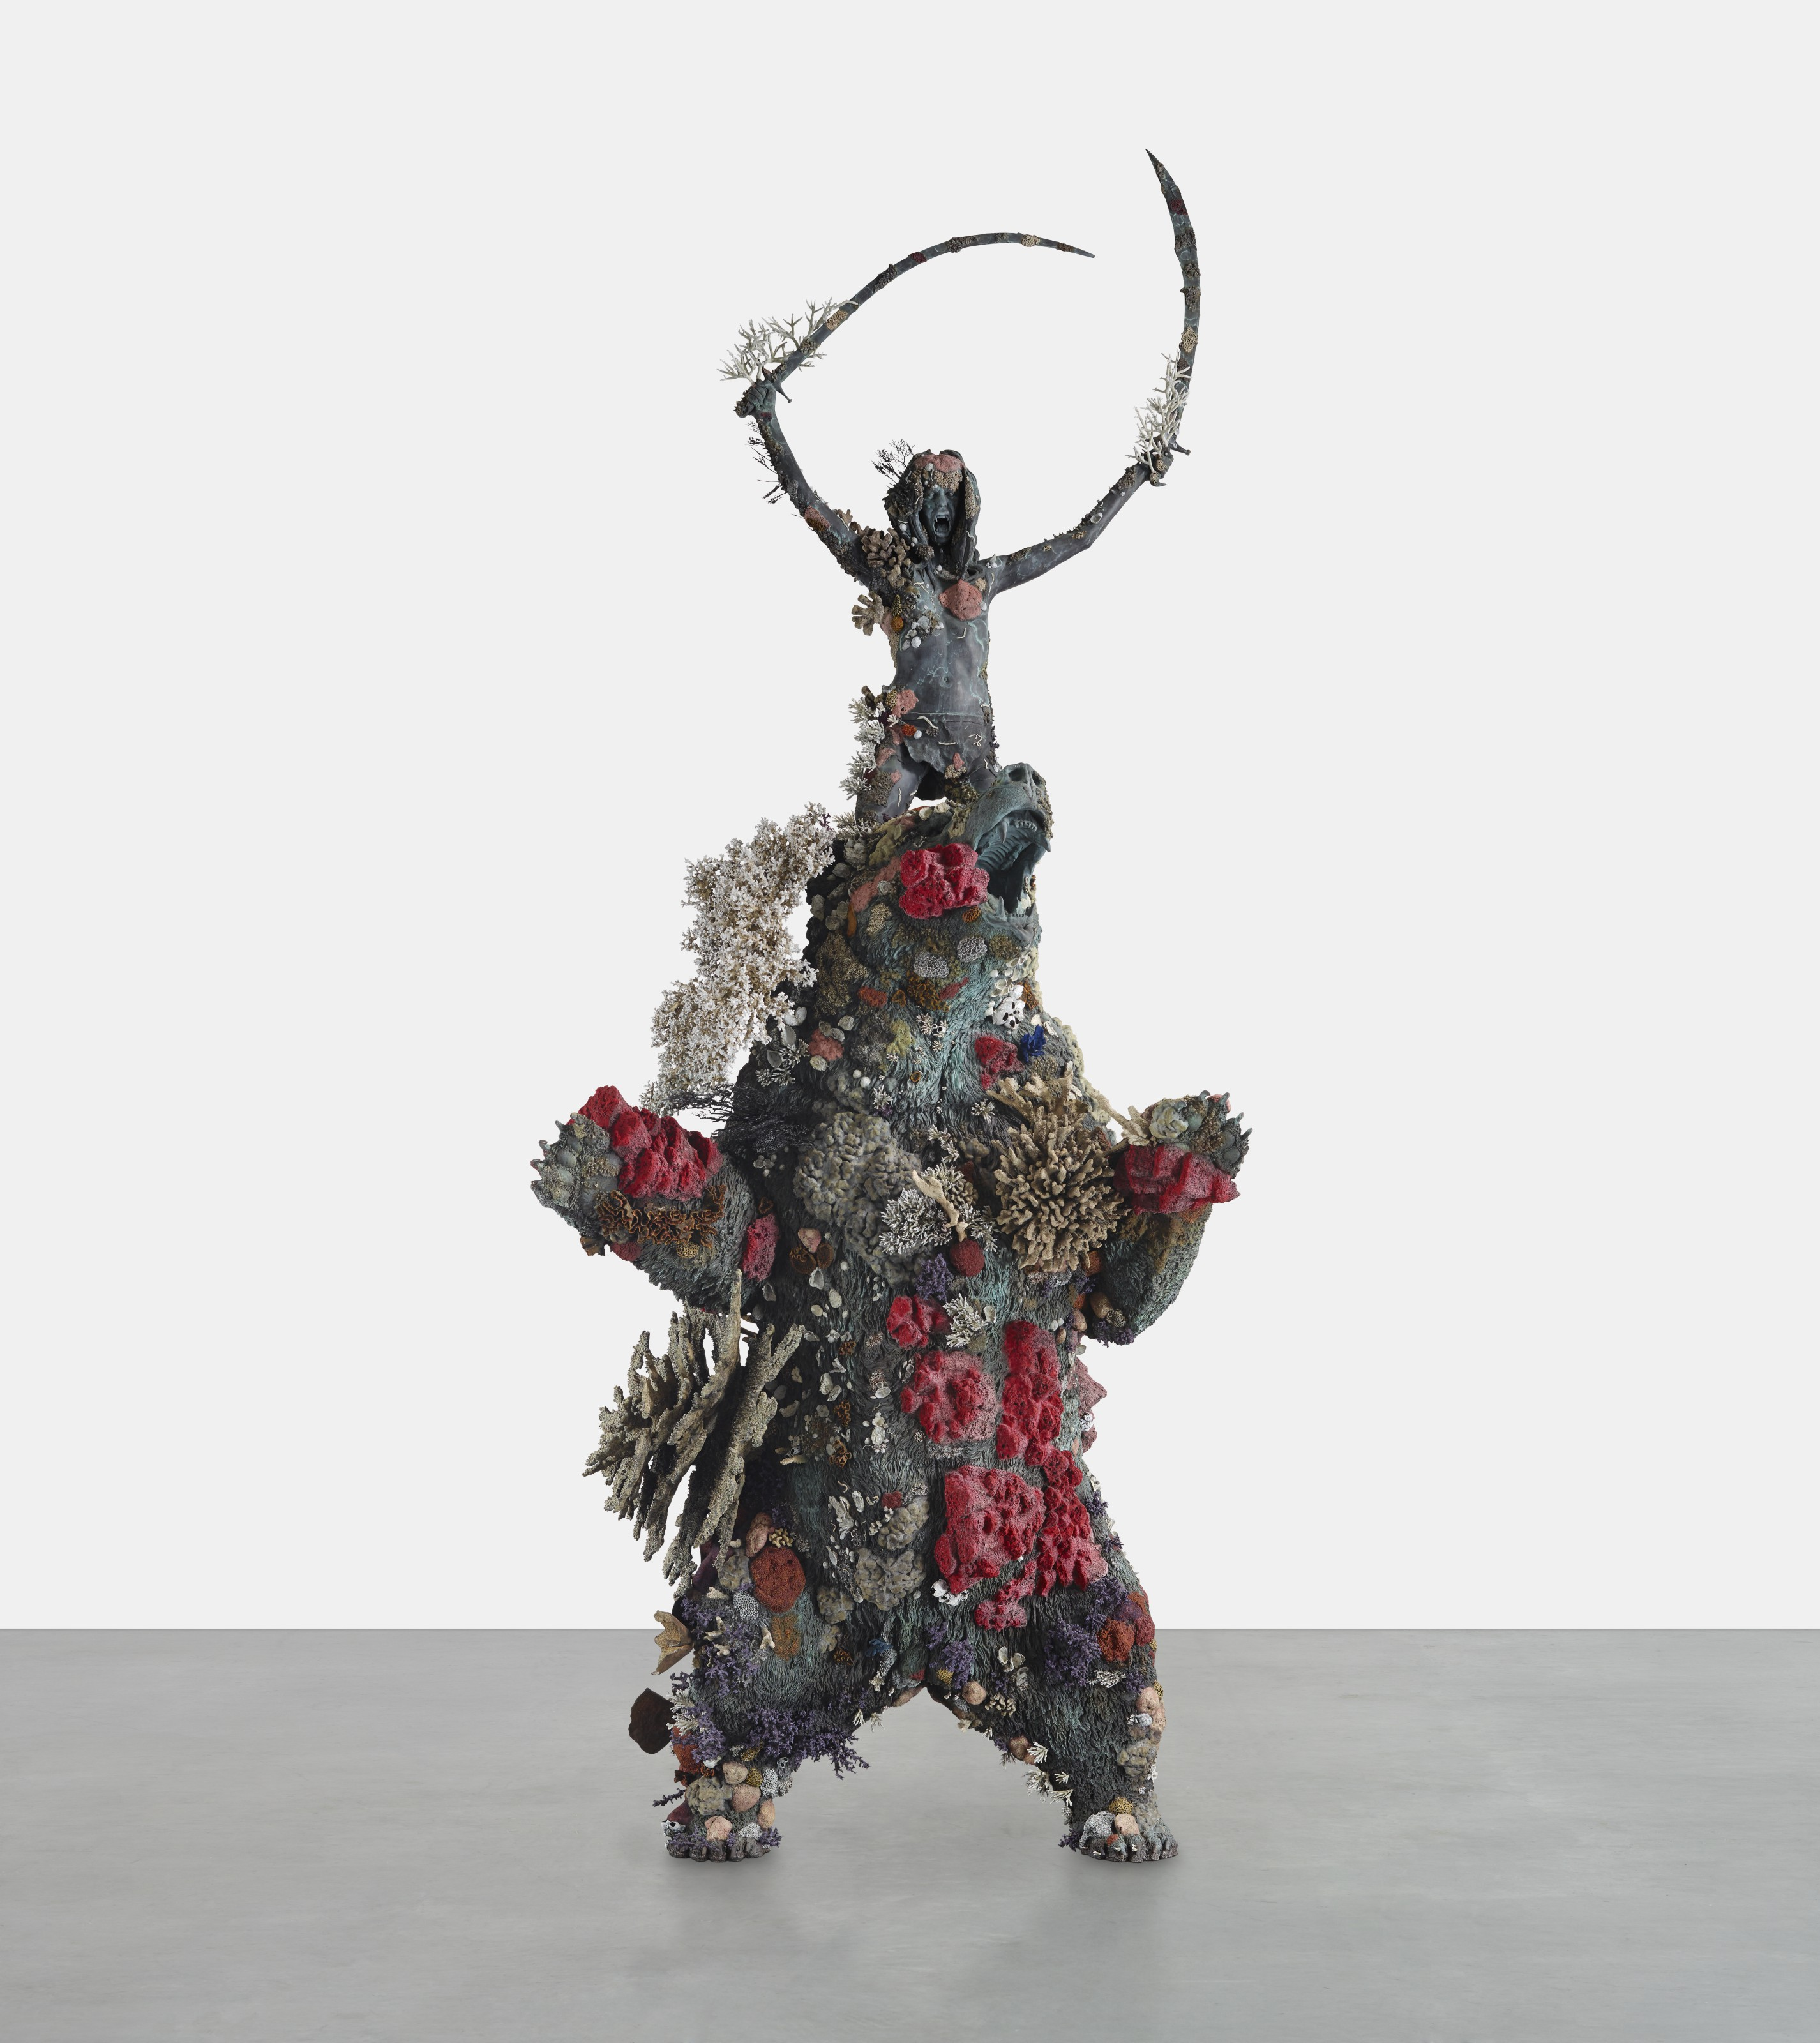 Damien Hirst (b. 1965), The Warriorand the Bear, 2015. Bronze. 280¾ x 102⅜ x 79⅞ in (713 x 260 x 203 cm). Estimate $3,000,000-5,000,000. Offered in 21st Century Evening Sale on 11 May 2021 at Christie's in New York